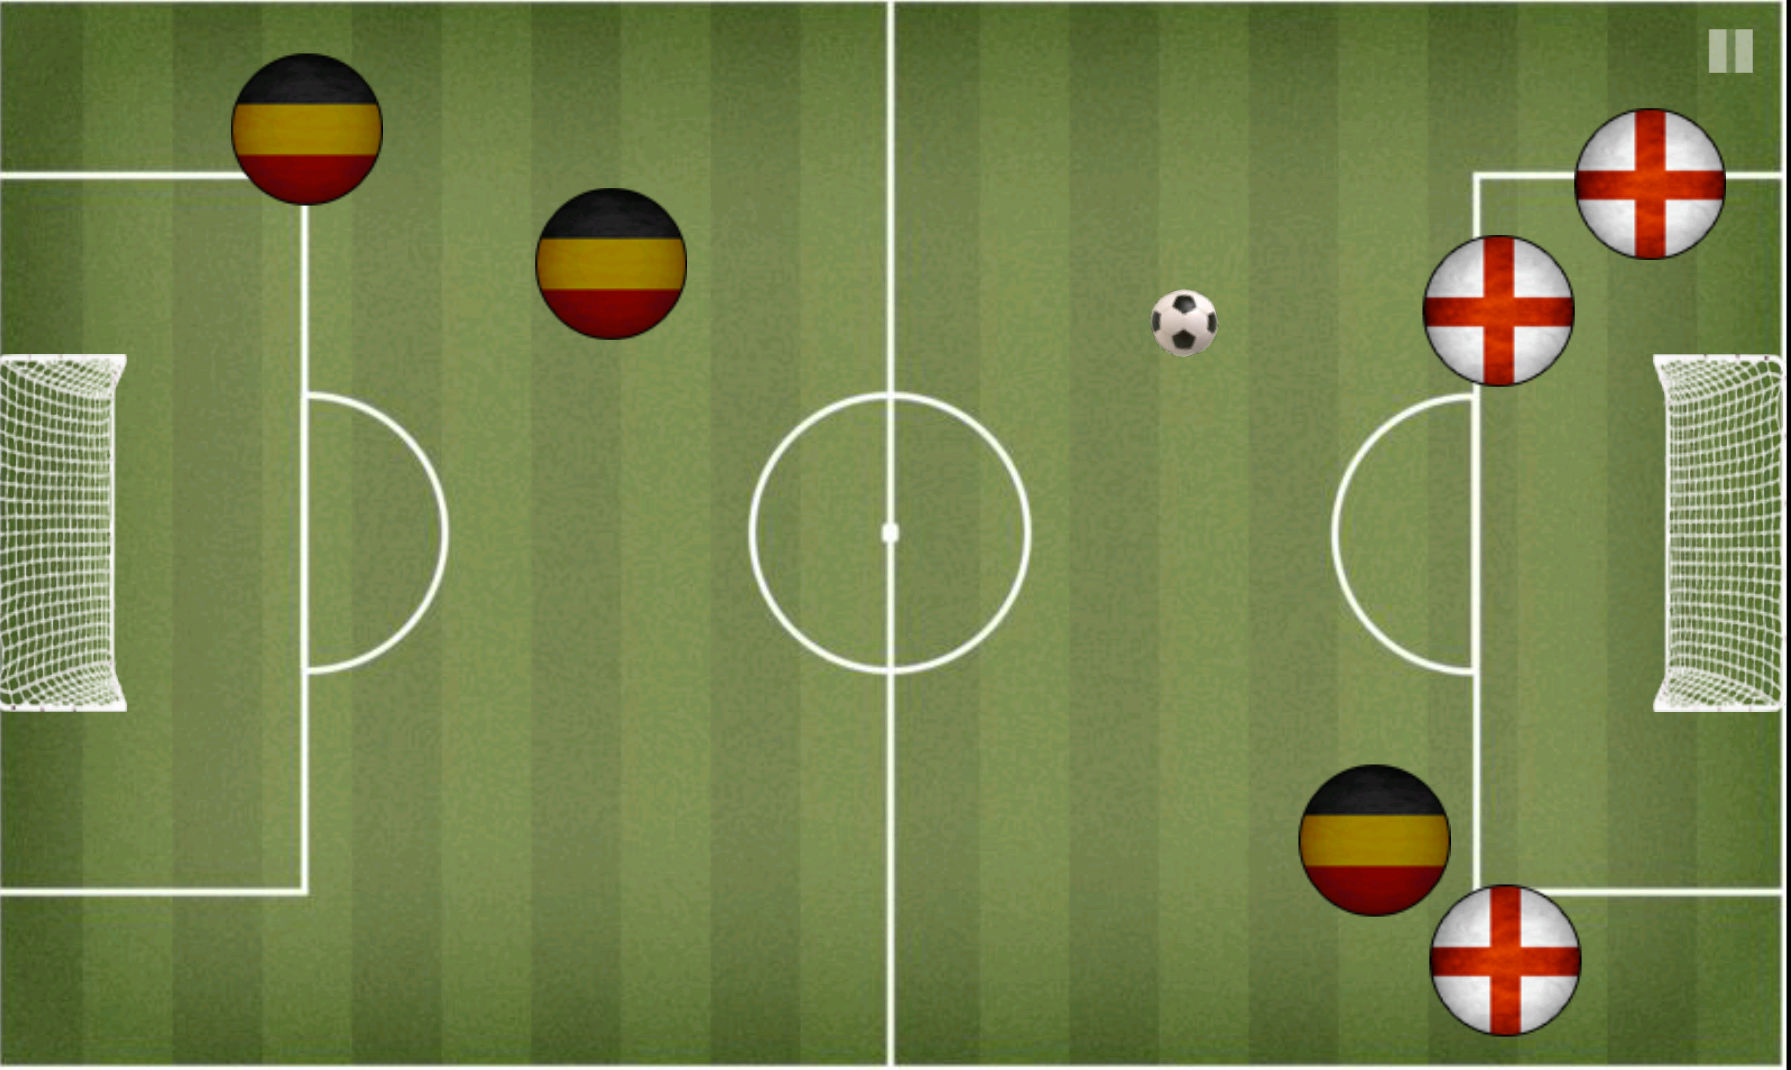 Download best football or soccer games for android in 2014 - Like Pro Zombie Soccer Pocket Soccer Is Another Game That Takes The Age Old Tradition Of Soccer And Mixes It Up With The Modern Pocket Soccer Is Best